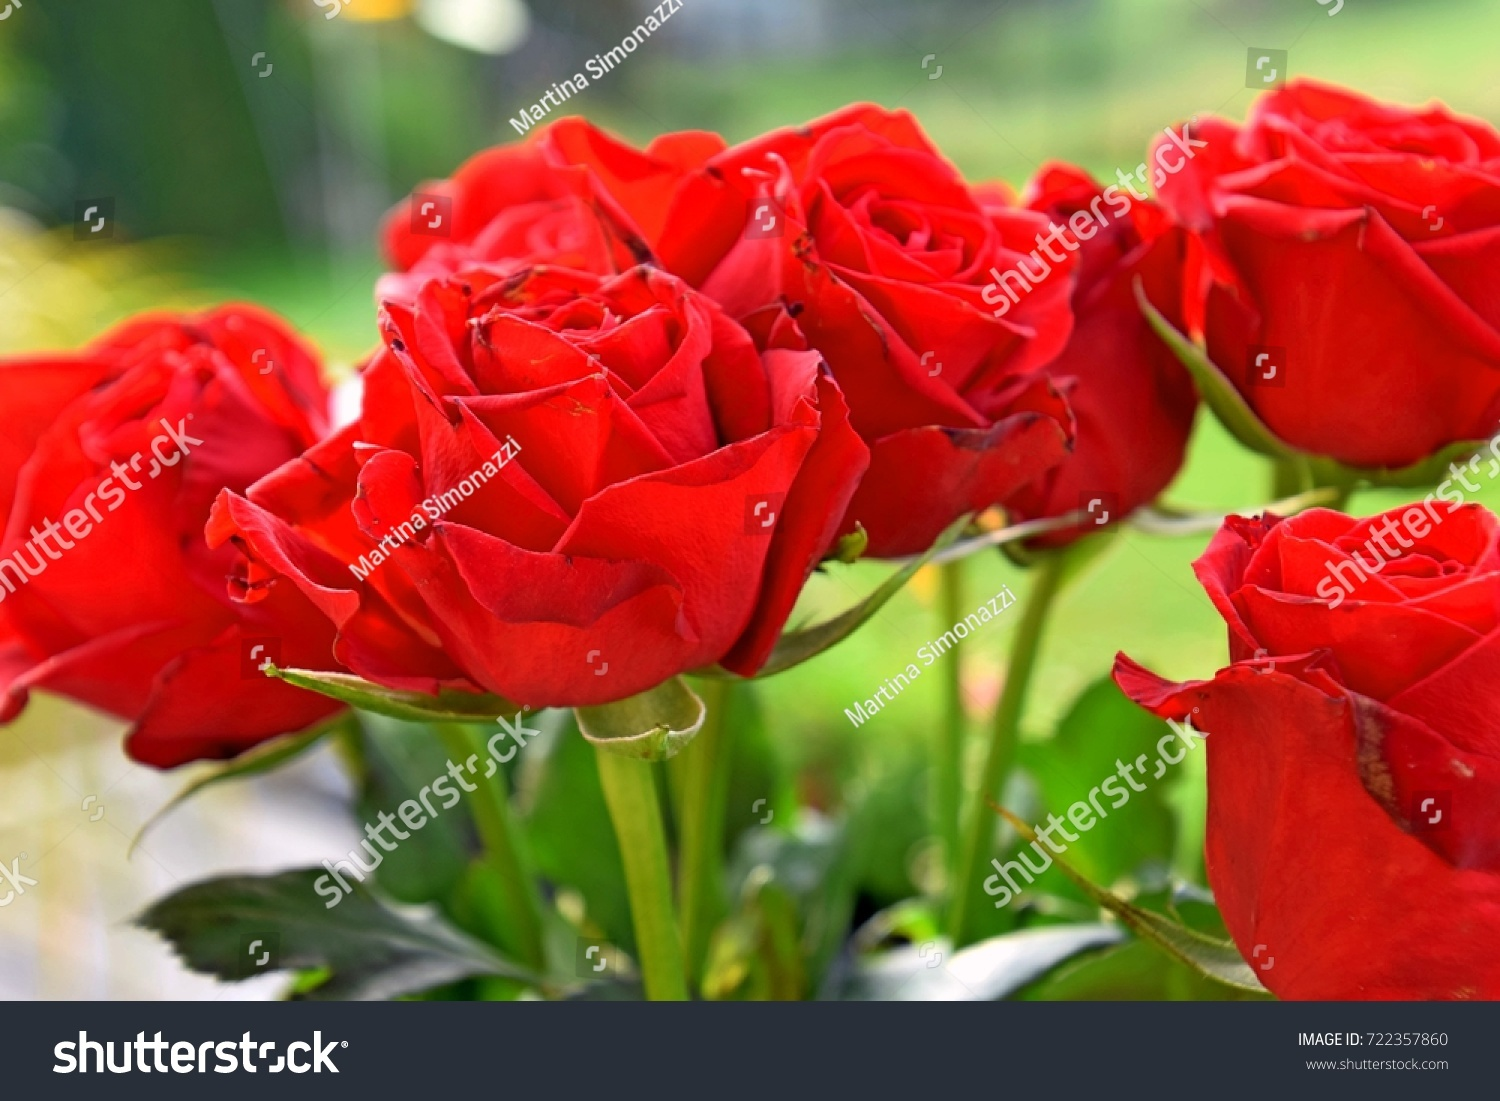 Red rose roses red symbol love stock photo 722357860 shutterstock red rose roses are red symbol of love buycottarizona